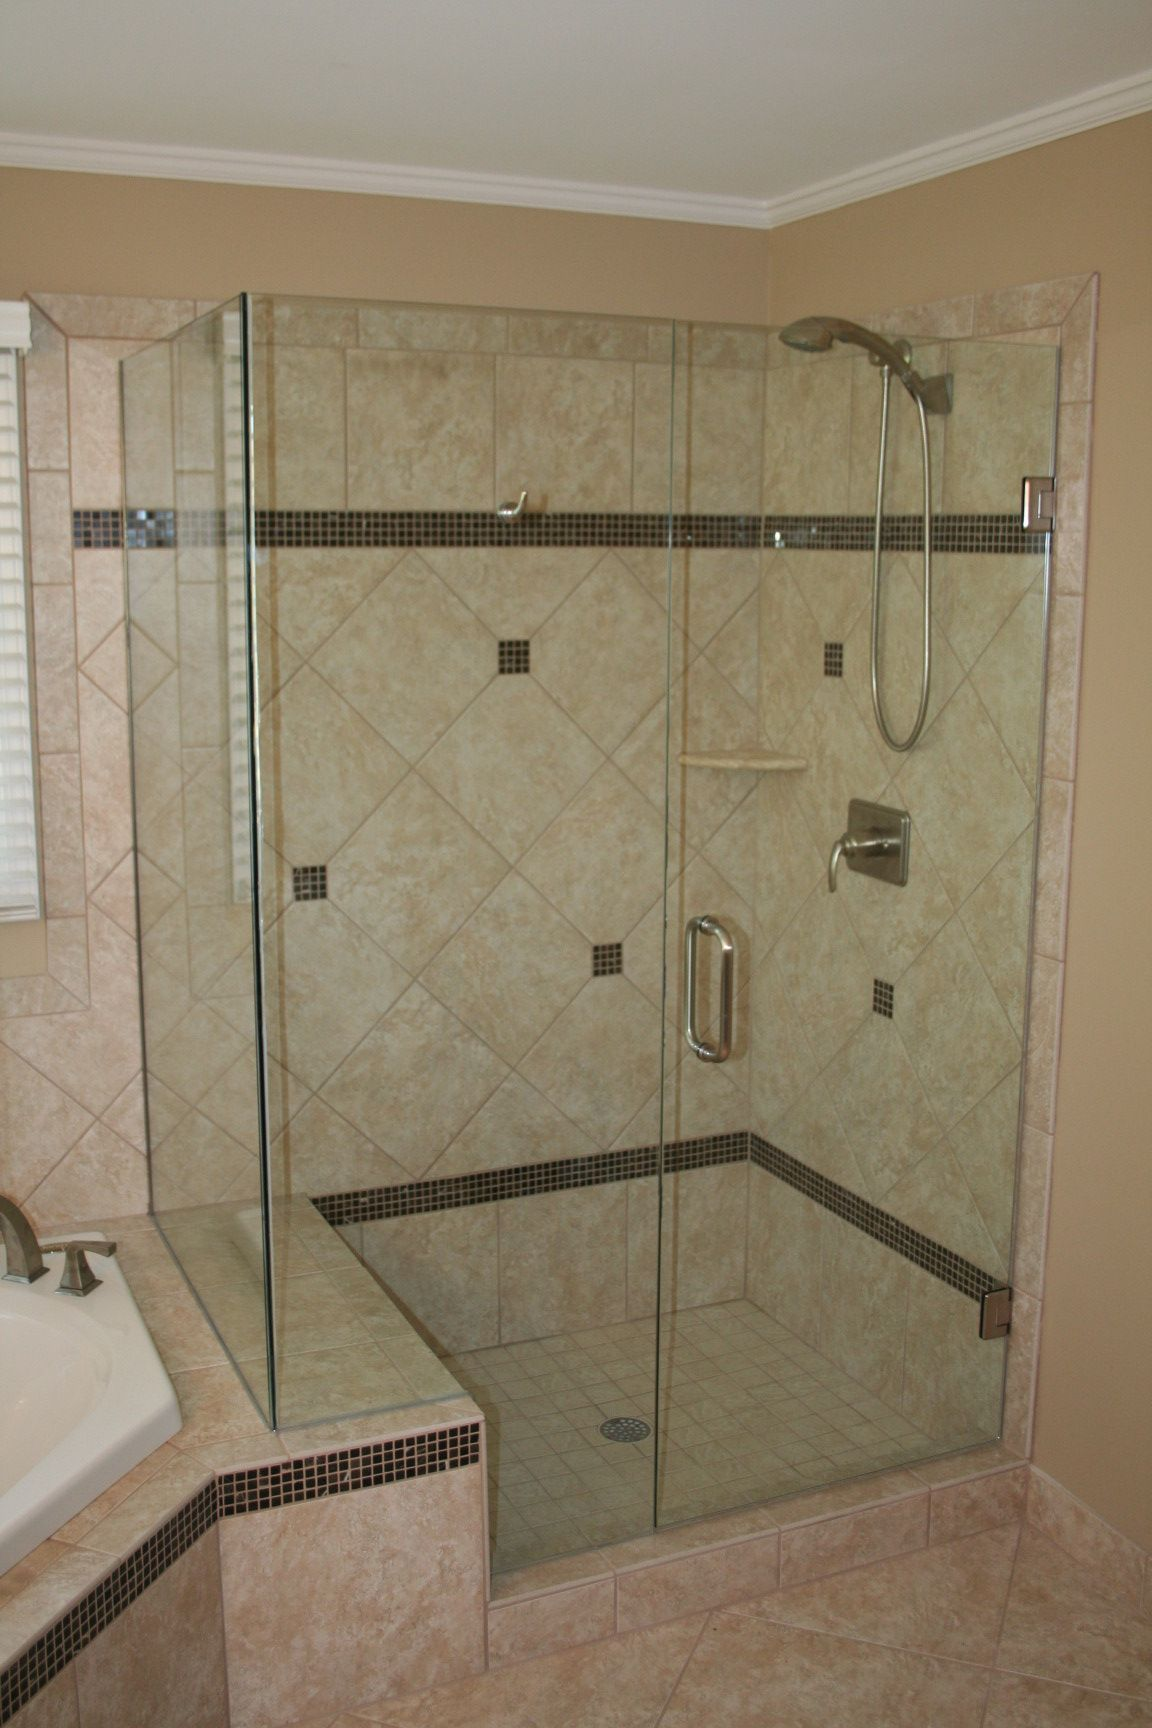 Shower Doors Euro Shower Doors Michigan Tim S Glass Euro